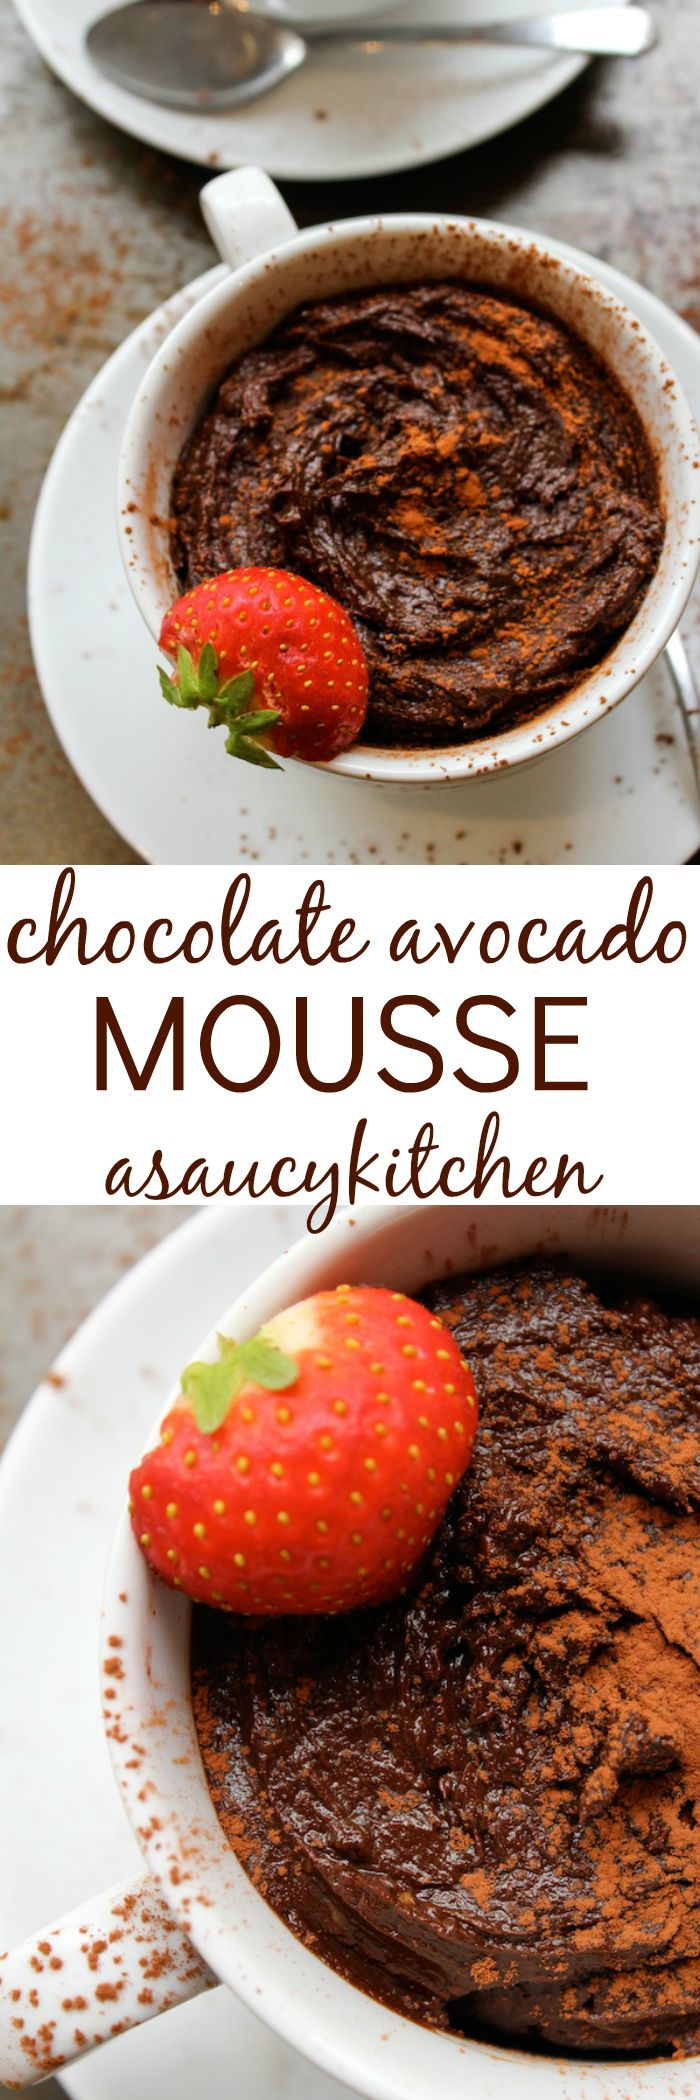 Chocolate Avocado Mousse www.asaucykitchen.com